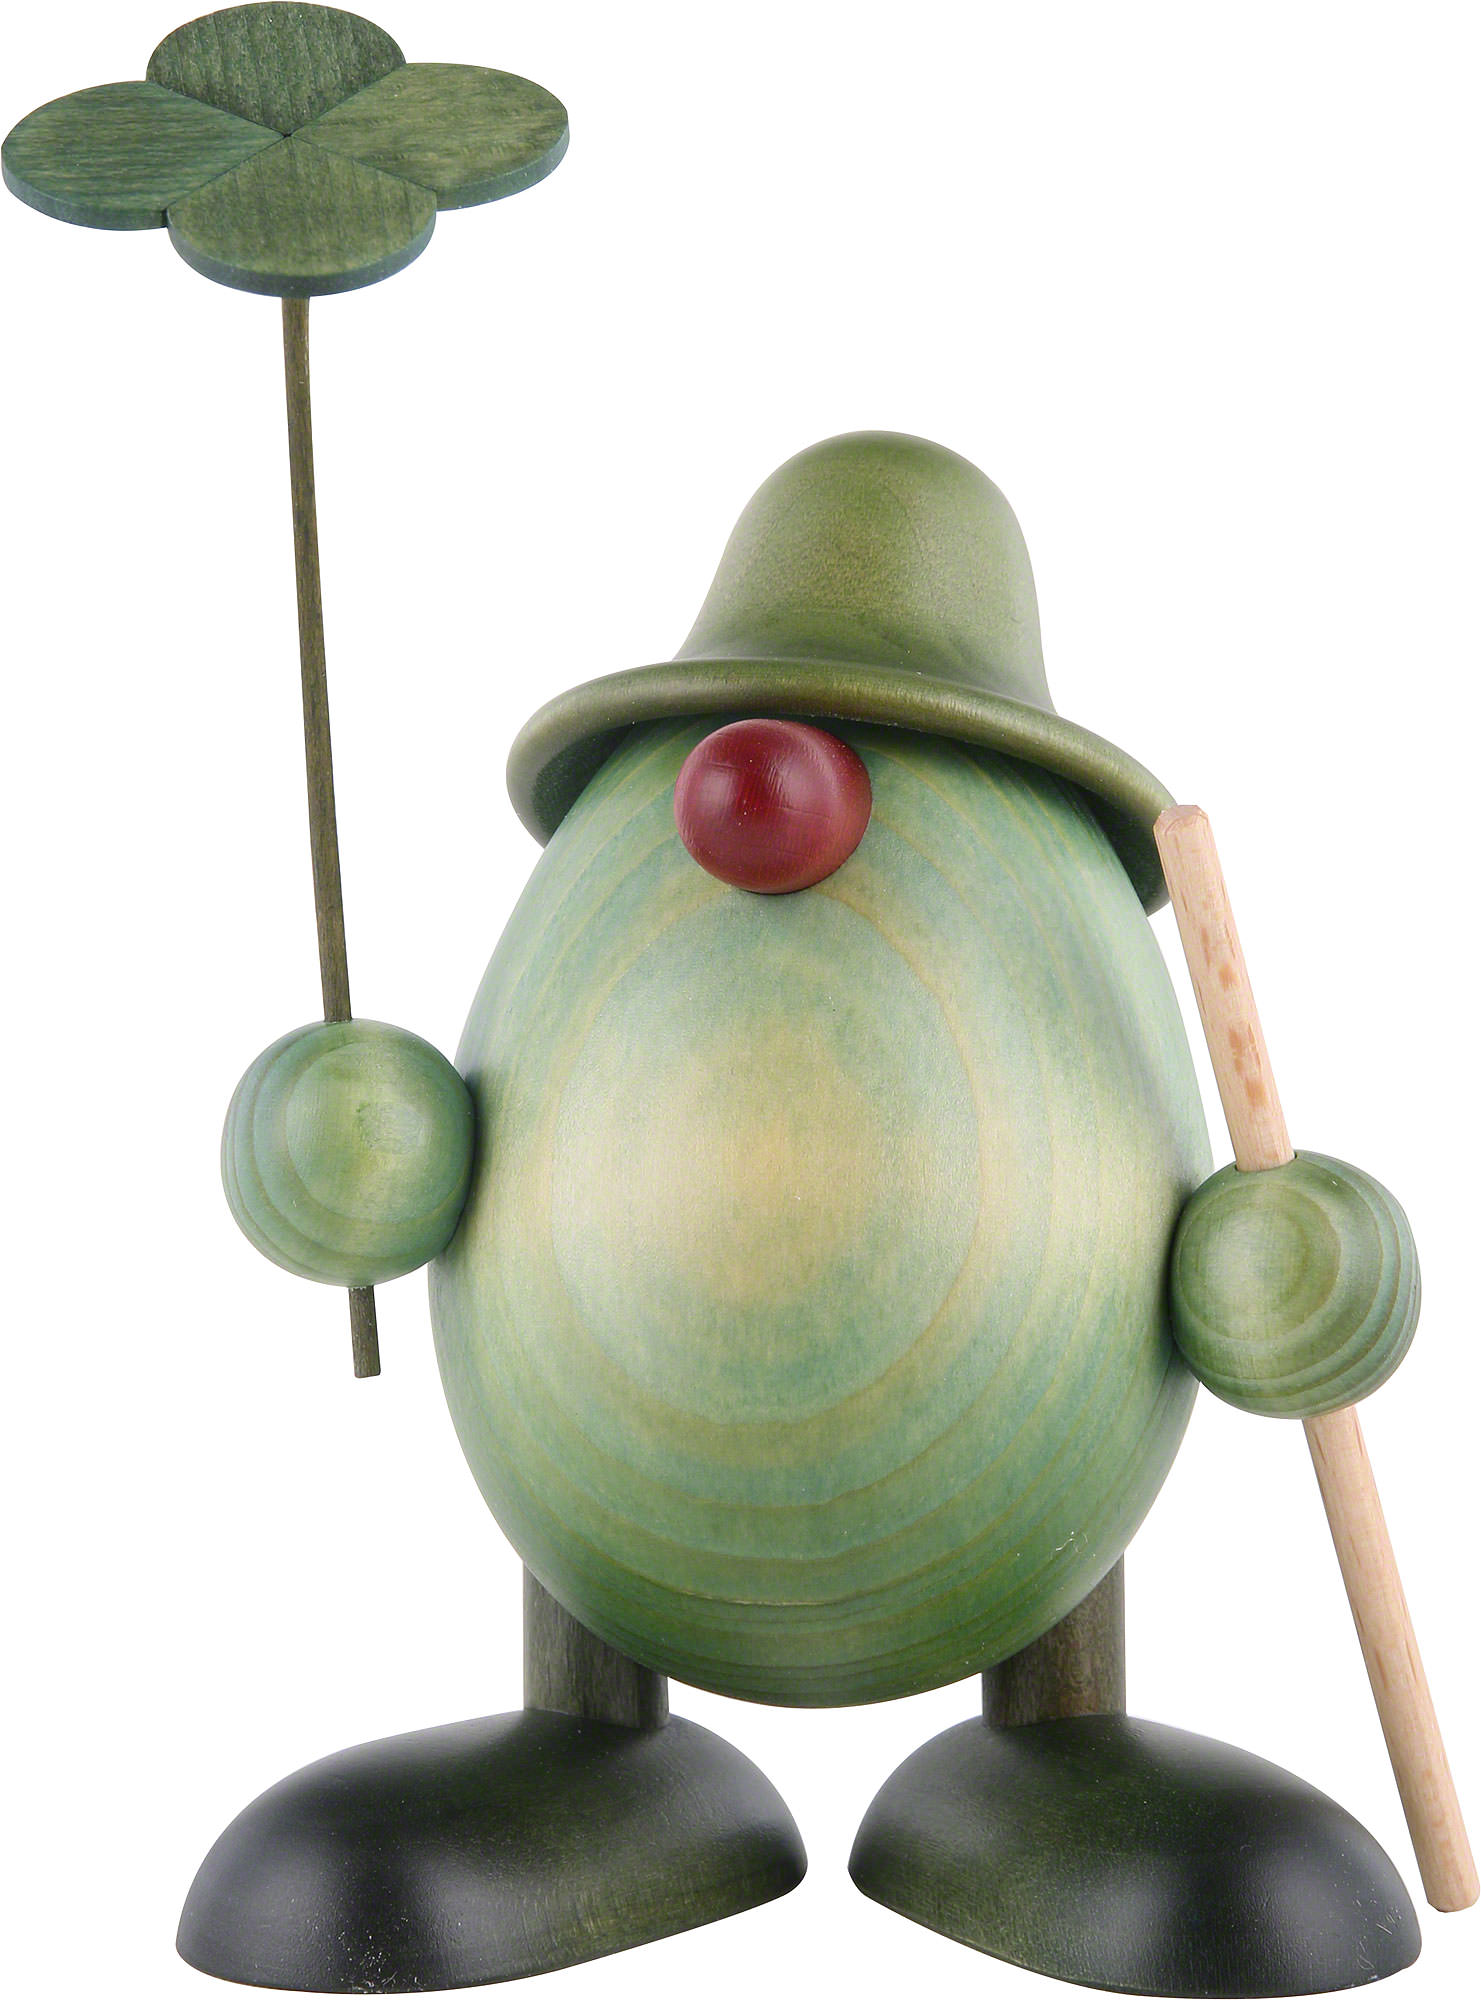 little green man with four leaf clover and stick standing 11 cm